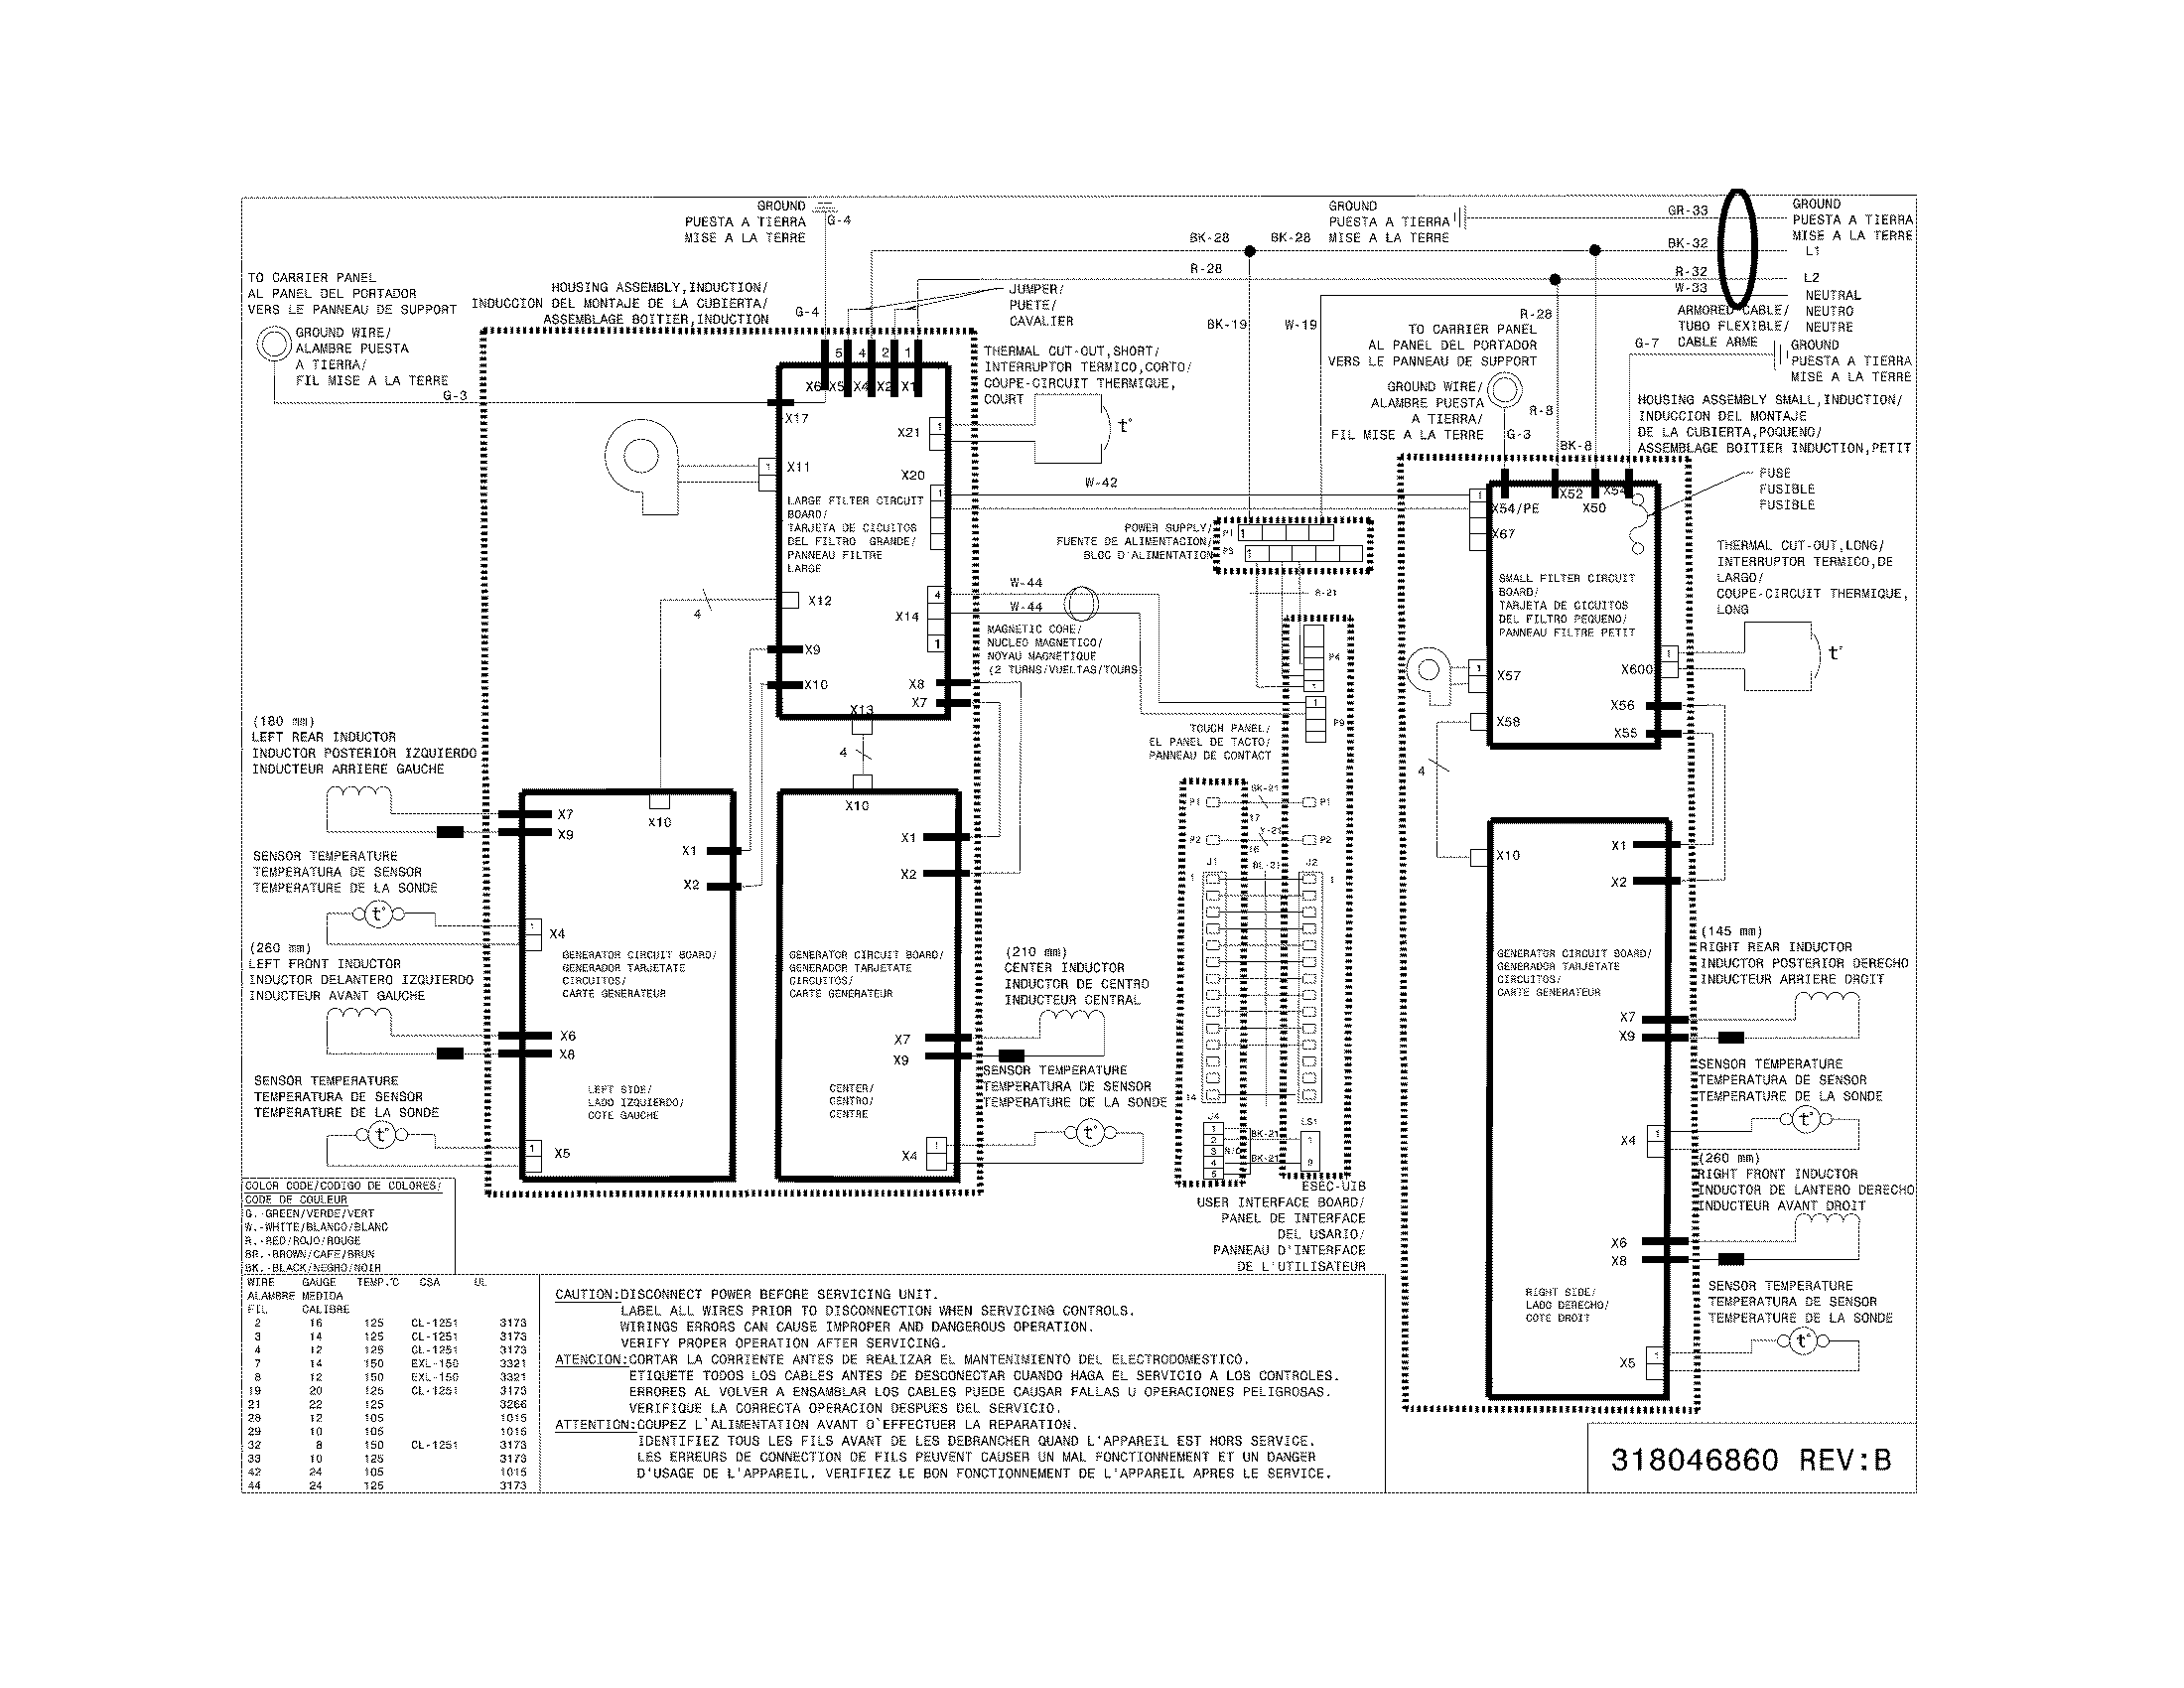 2002 Workhorse Chis Wiring Diagram 2004 Workhorse Wiring